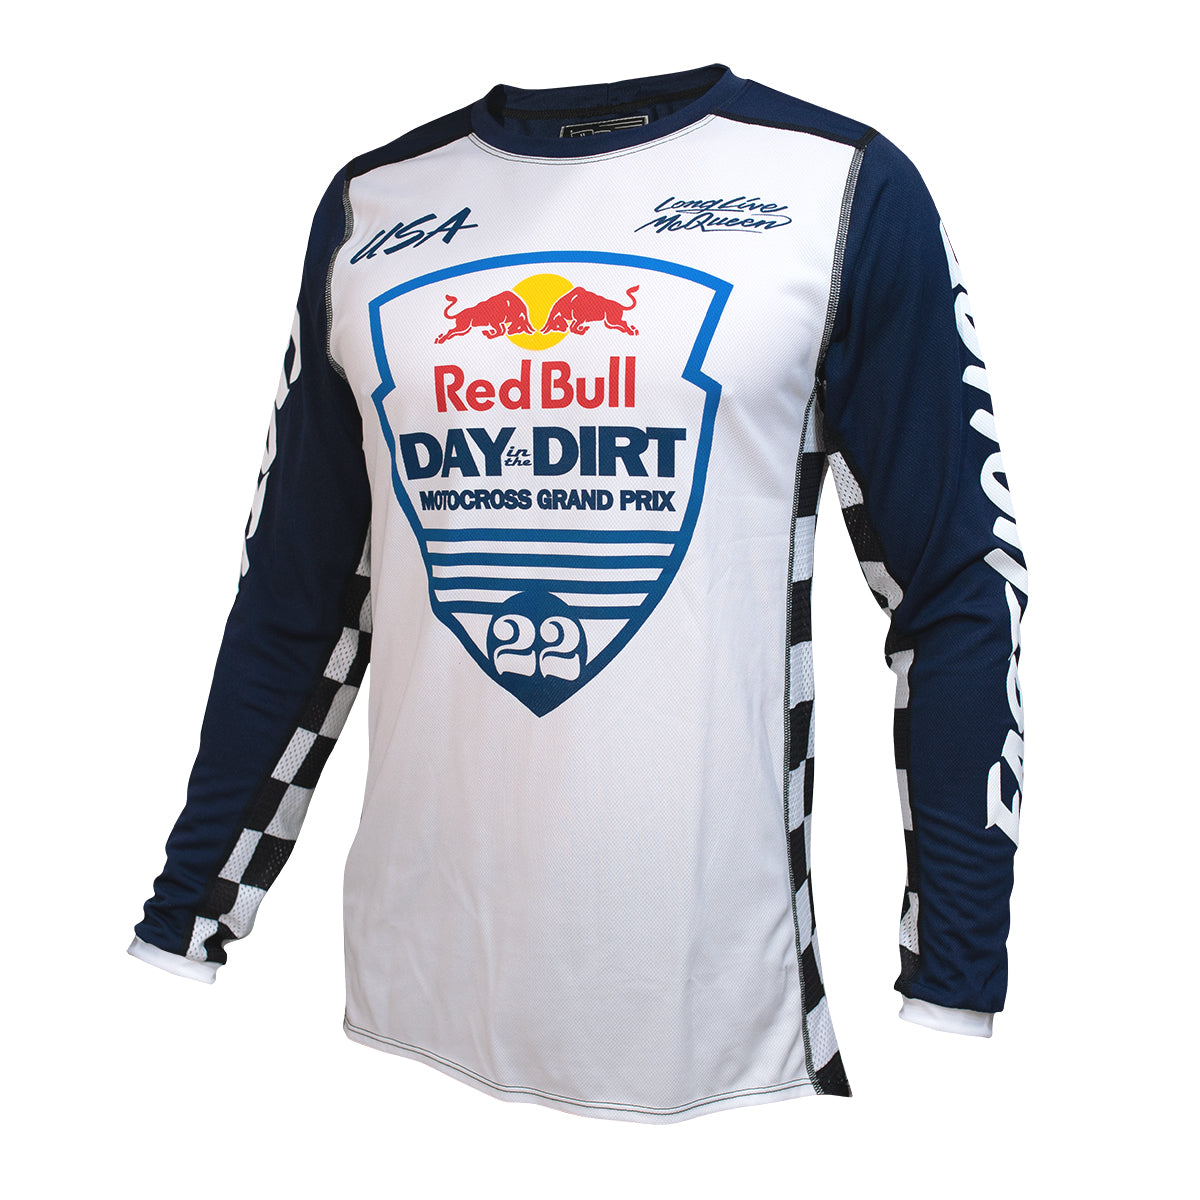 Red Bull Day in the Dirt 22 Jersey - White/Navy